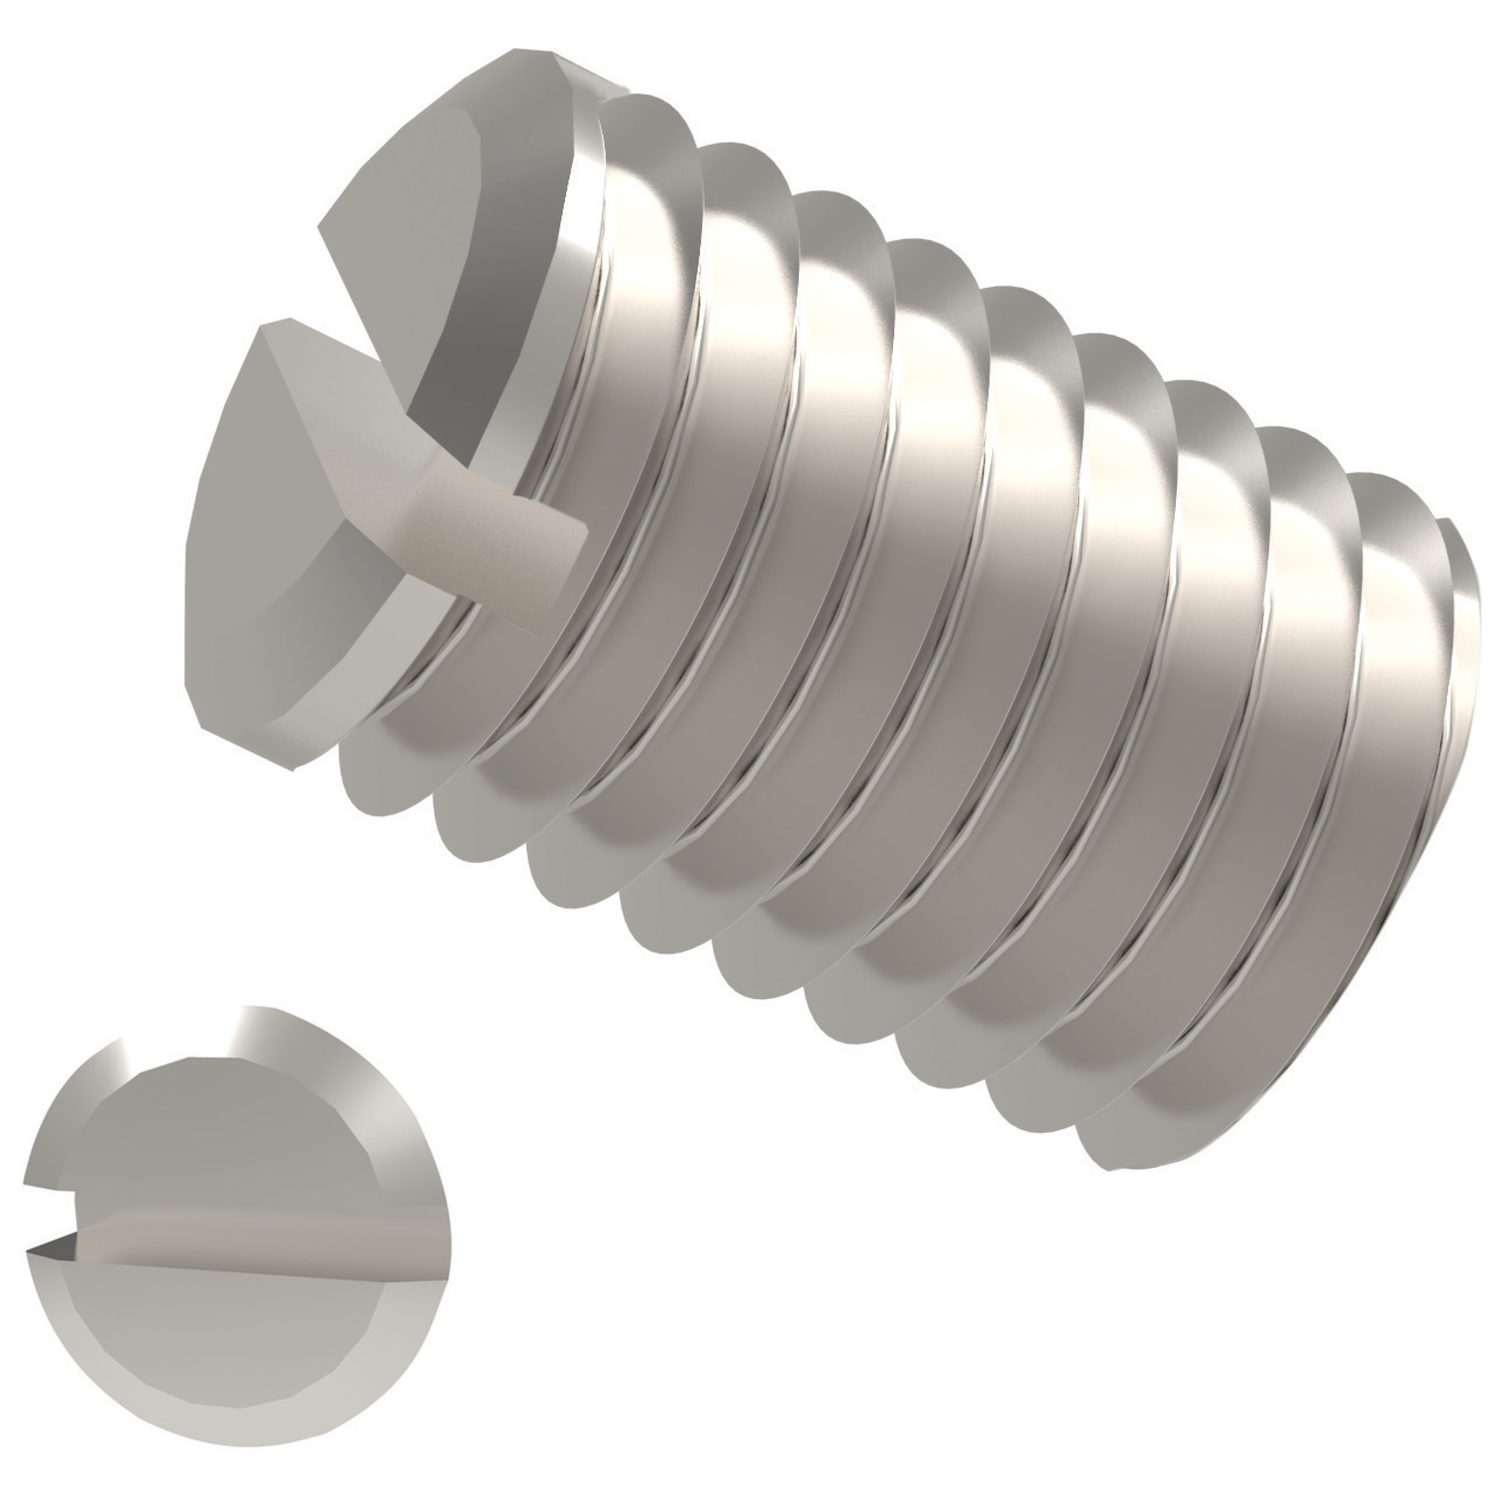 Slotted Set Screws Flat Point A4 Stainless Steel. To DIN 551, flat point.